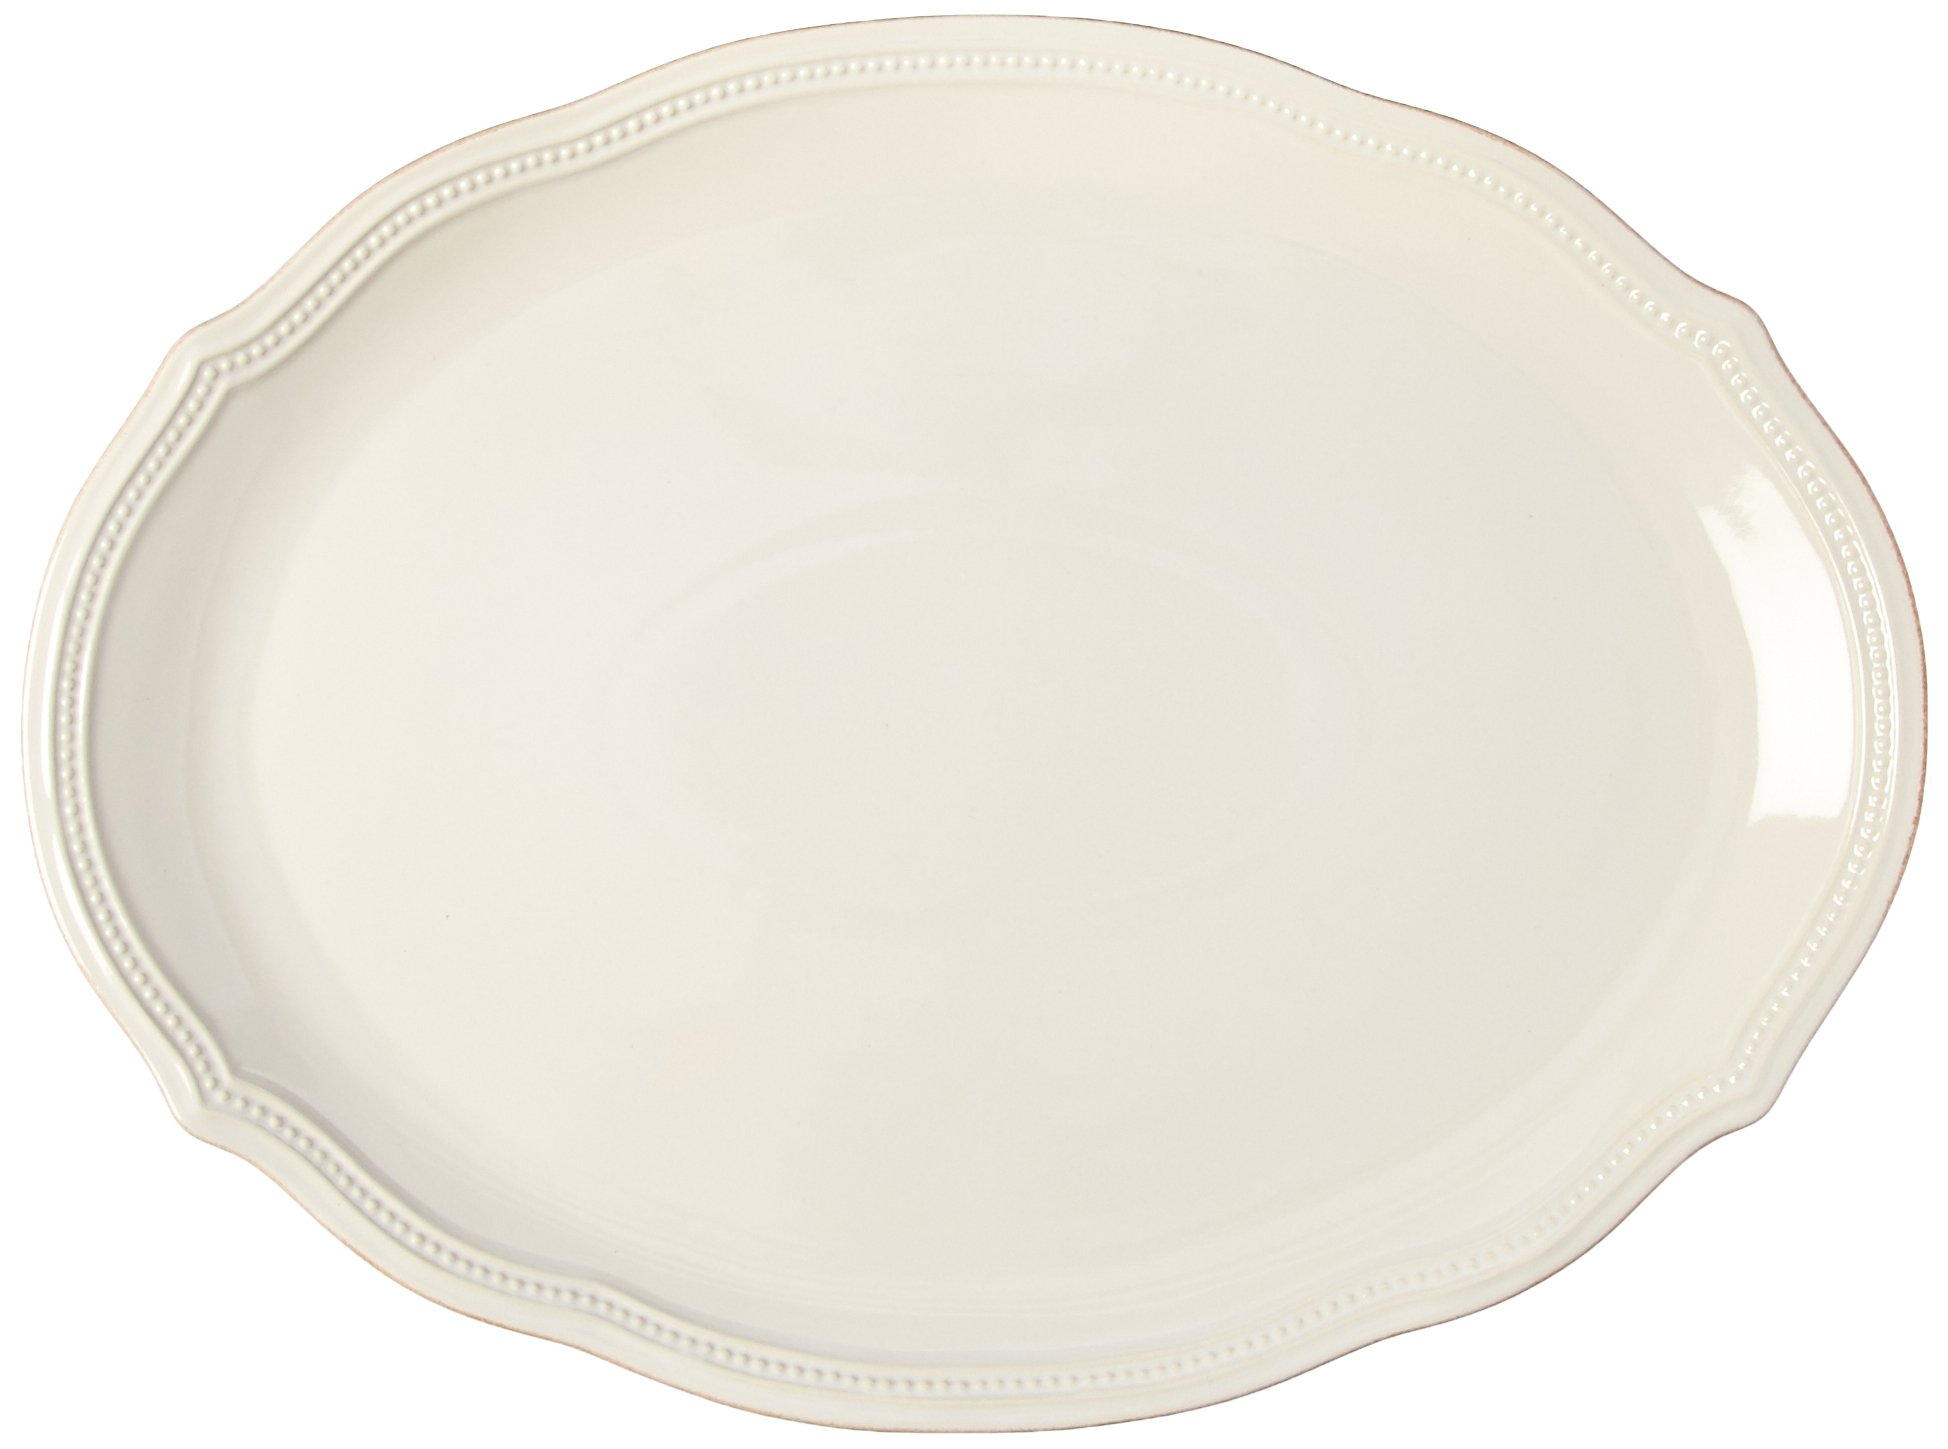 Lenox French Perle Bead Oval Platter, 16-Inch, White